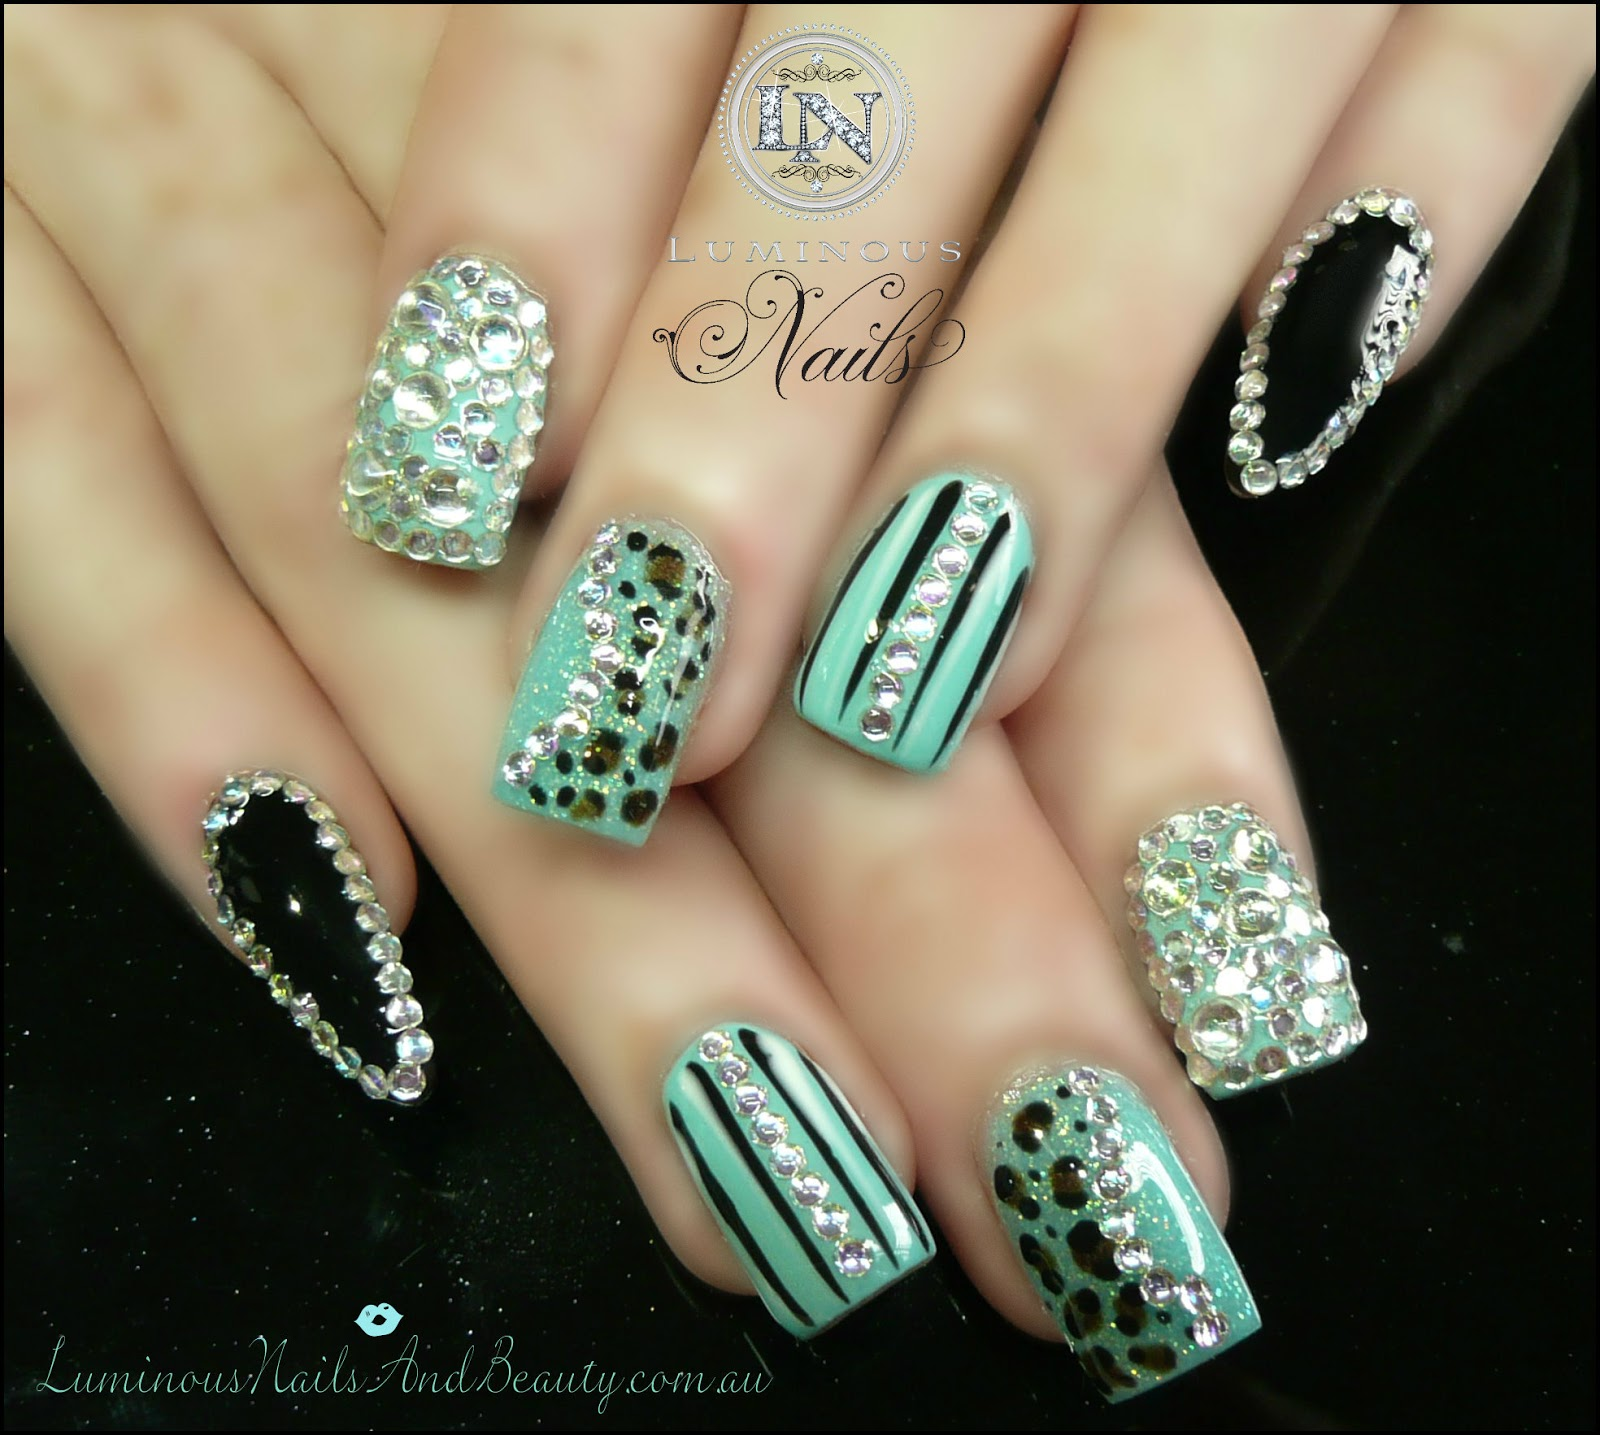 The Appealing Leopard print fake nail designs Pics